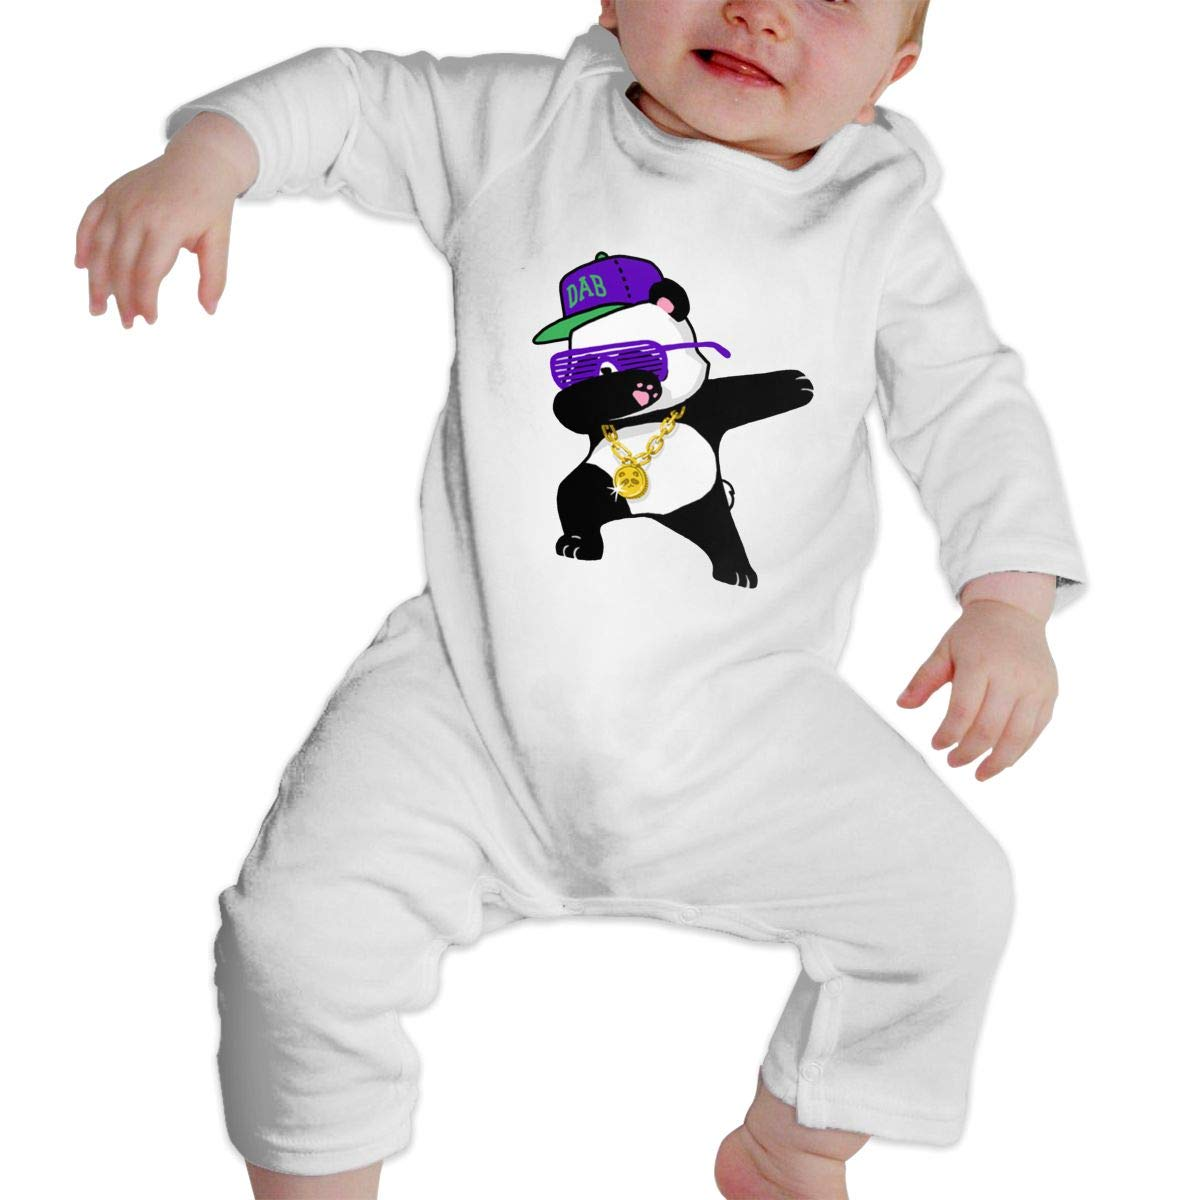 KAYERDELLE Dabbing Panda Long Sleeve Unisex Baby Playsuit for 6-24 Months Infant